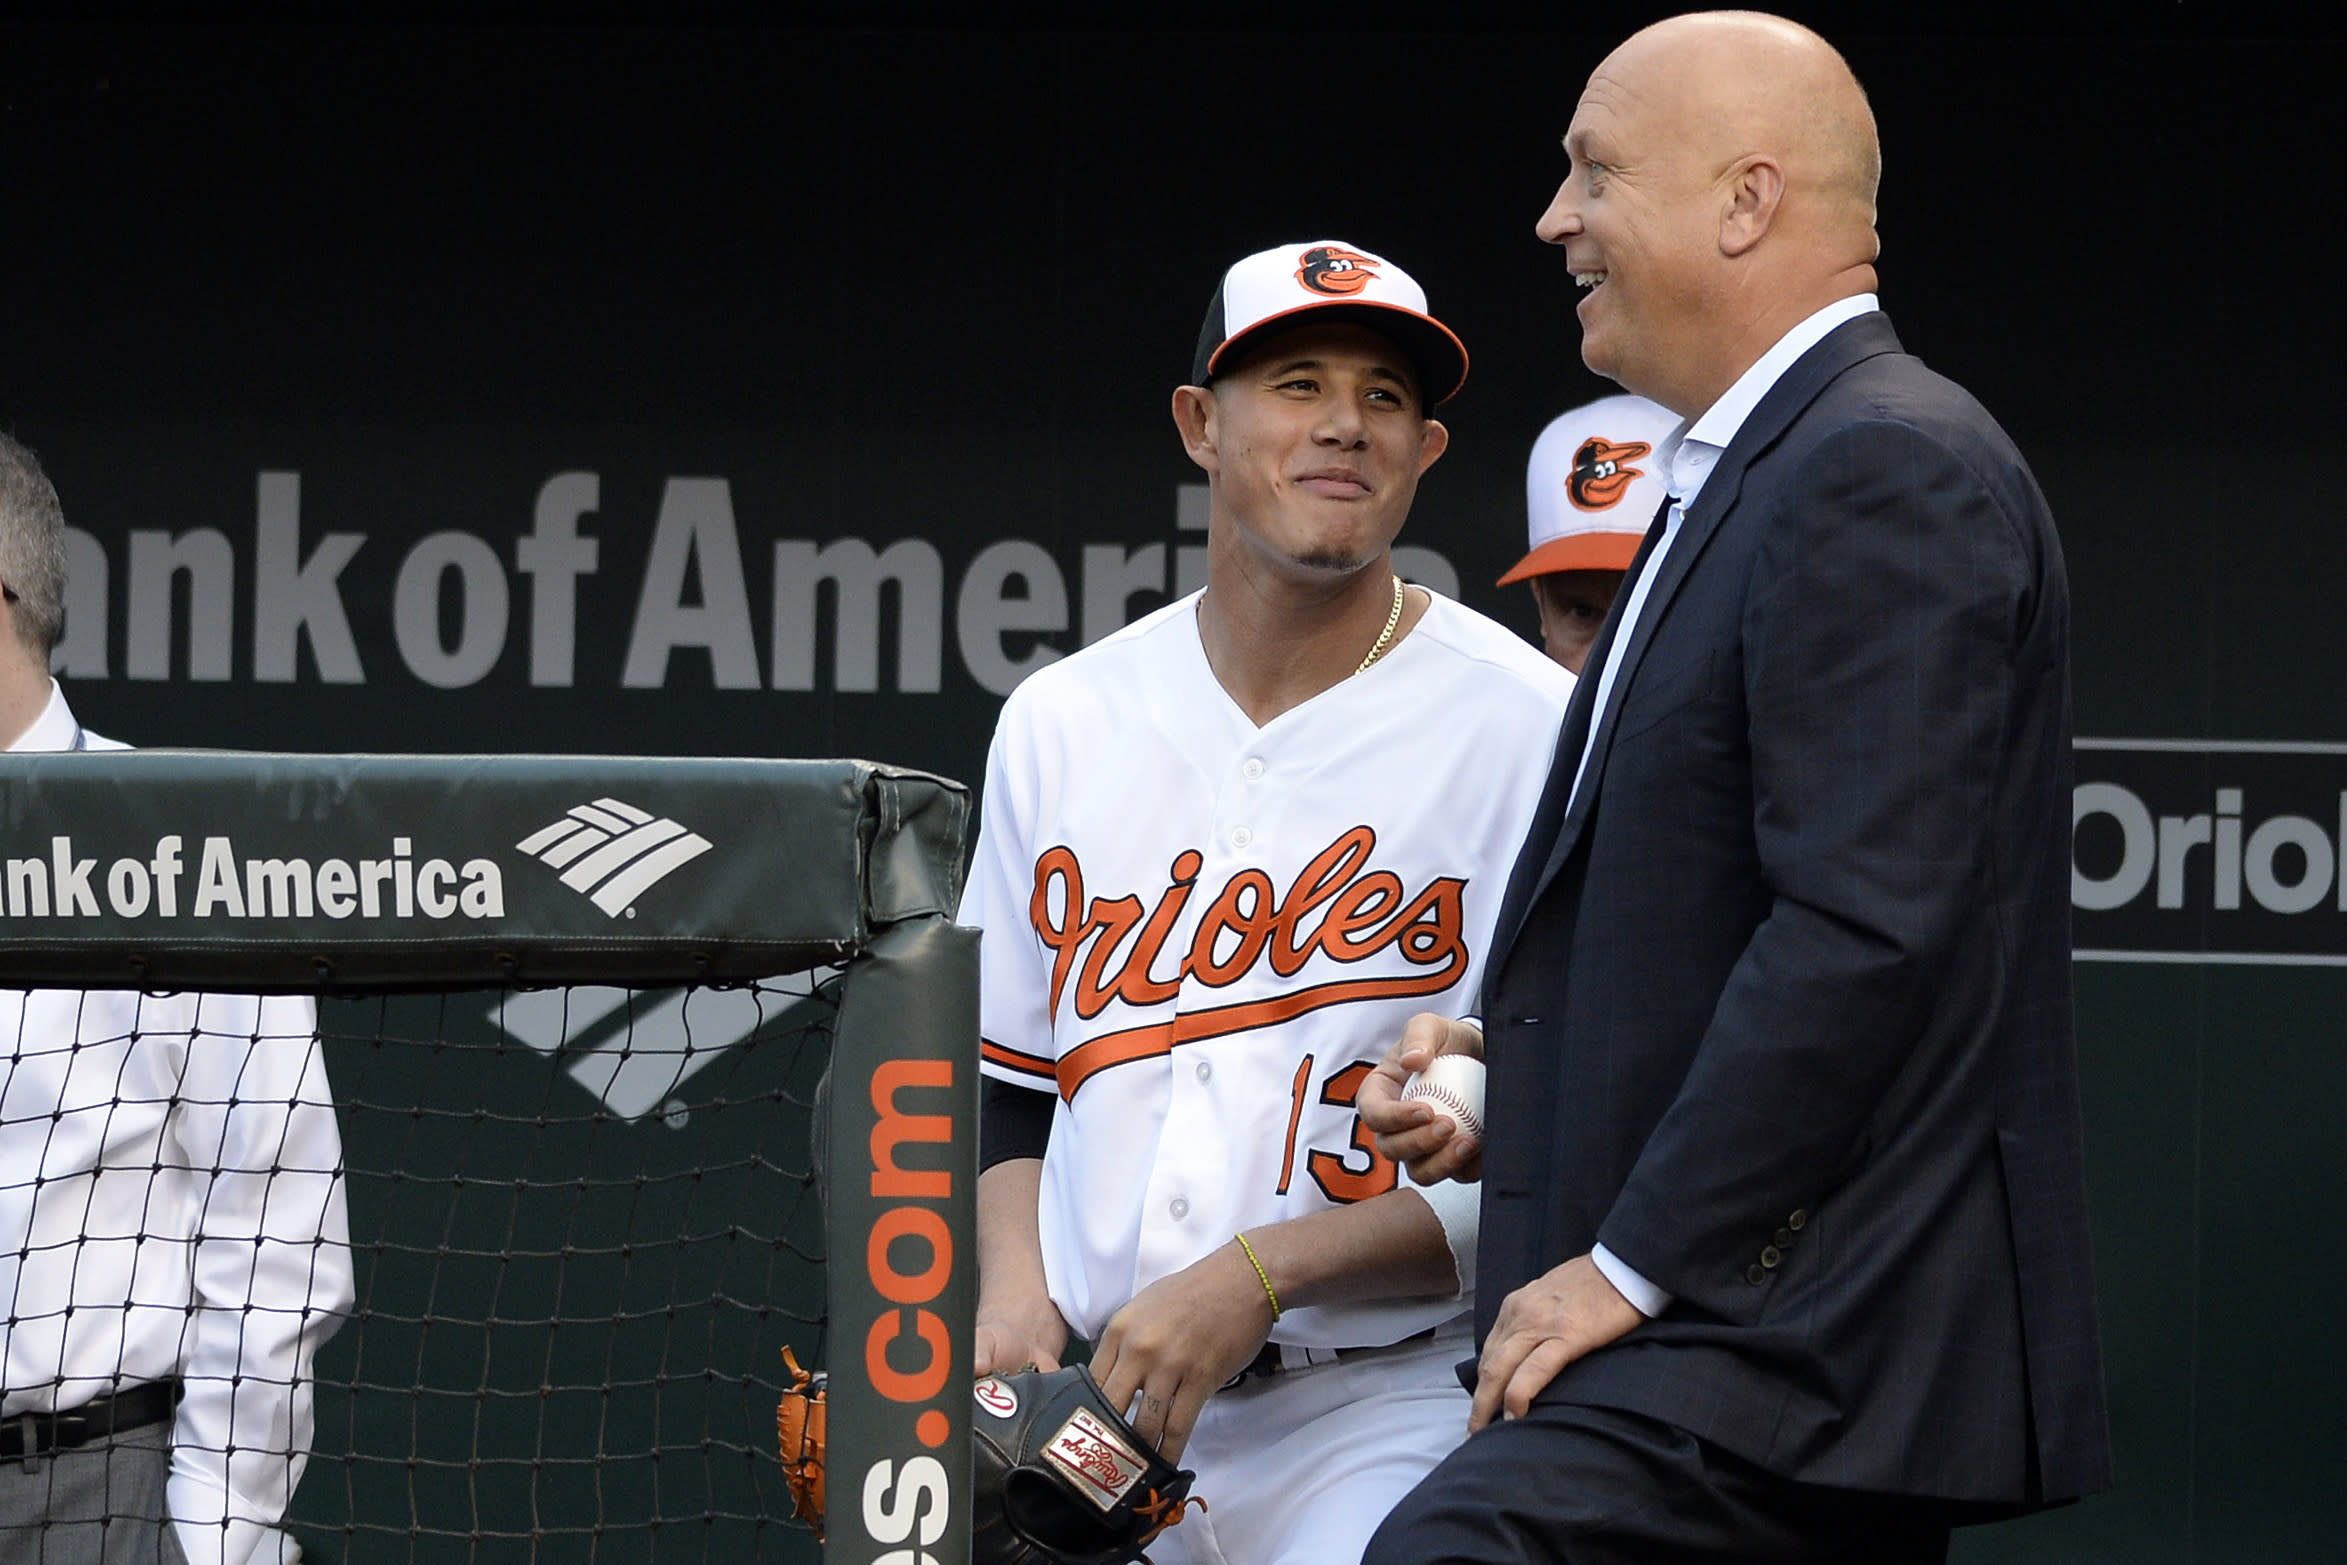 Cal can't help, Orioles lose 11-2 on special night